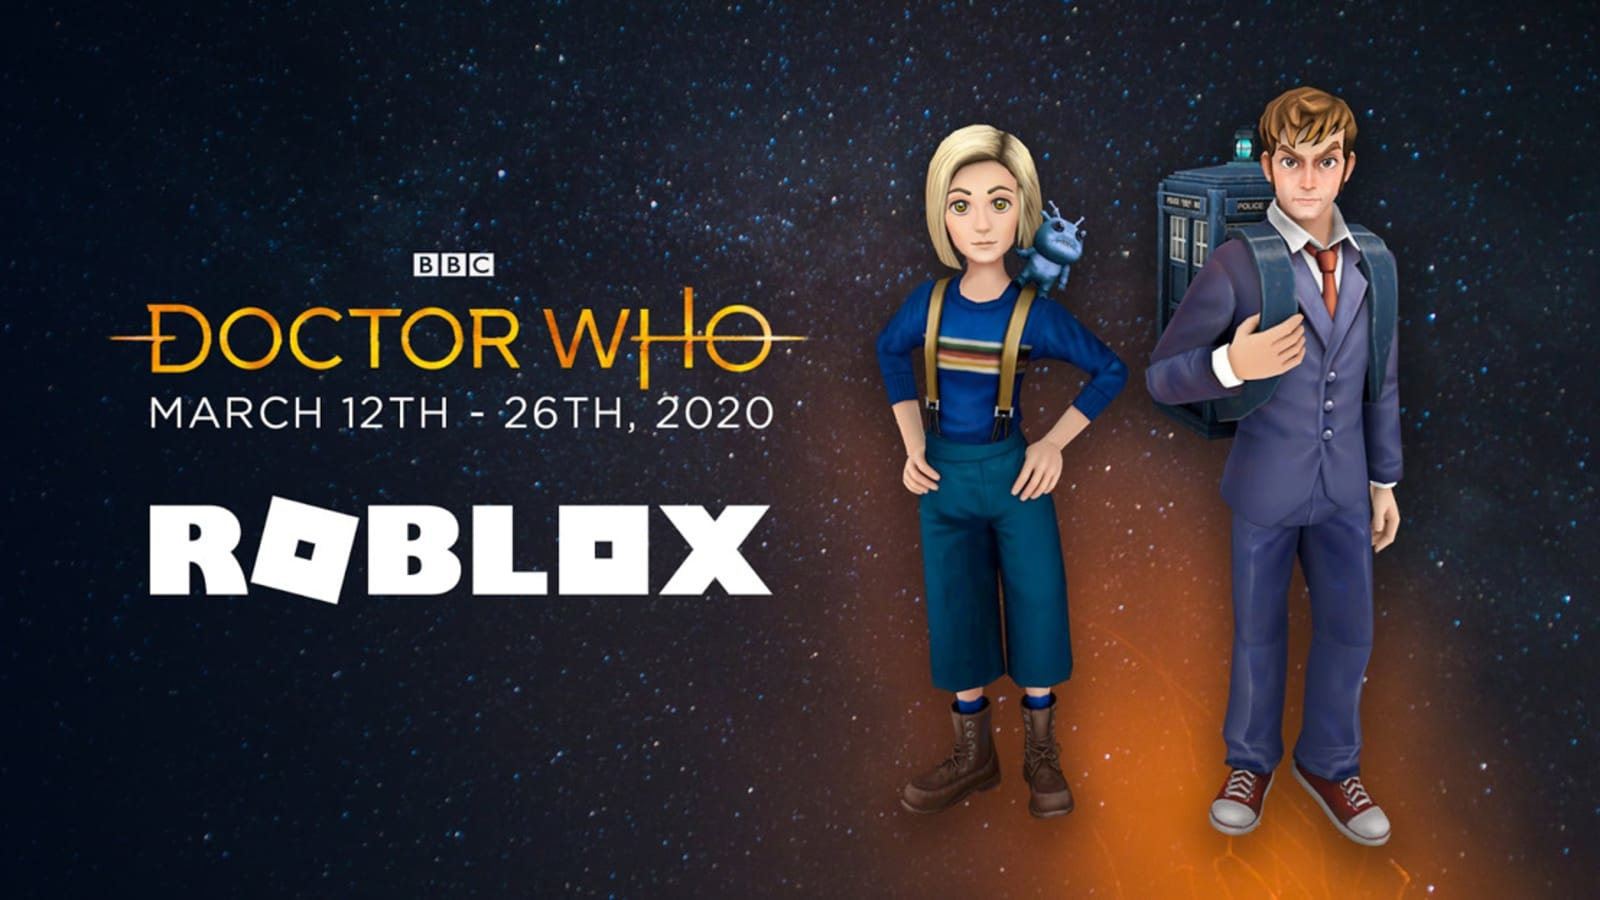 Roblox Announces Limited Run Doctor Who Collaboration Engadget